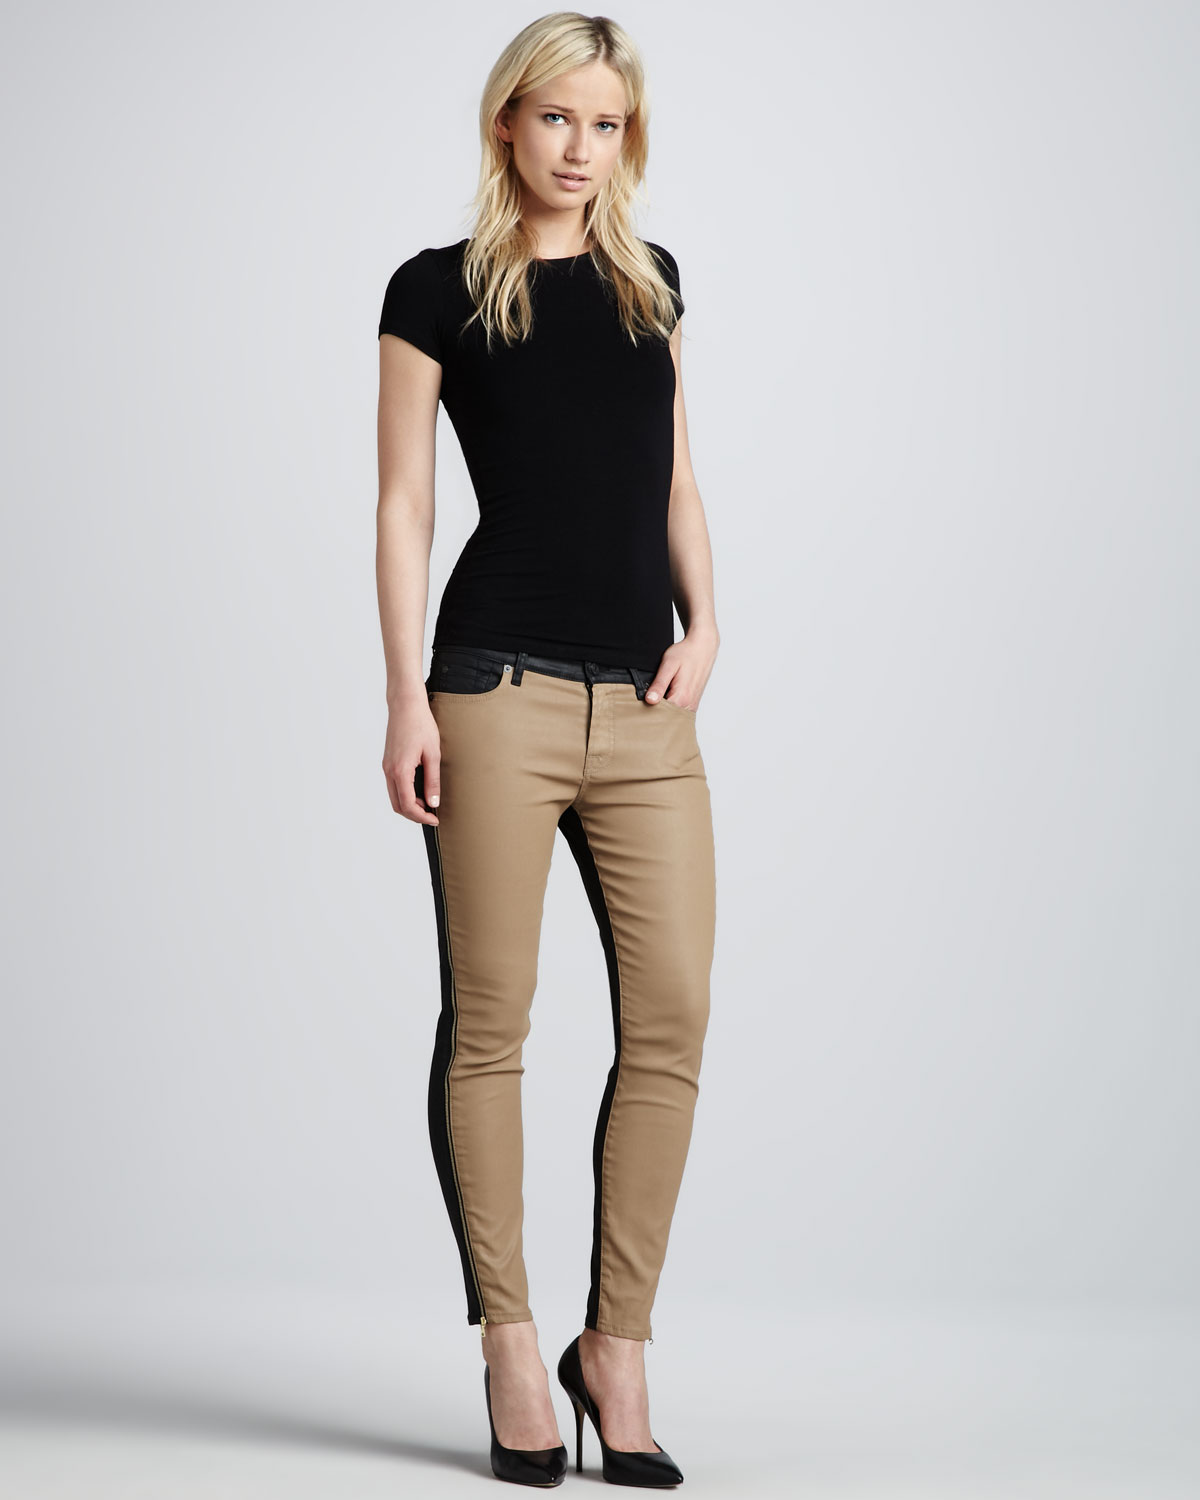 db1779cda5768 Lyst - 7 For All Mankind Two-tone Skinny Jeans in Natural